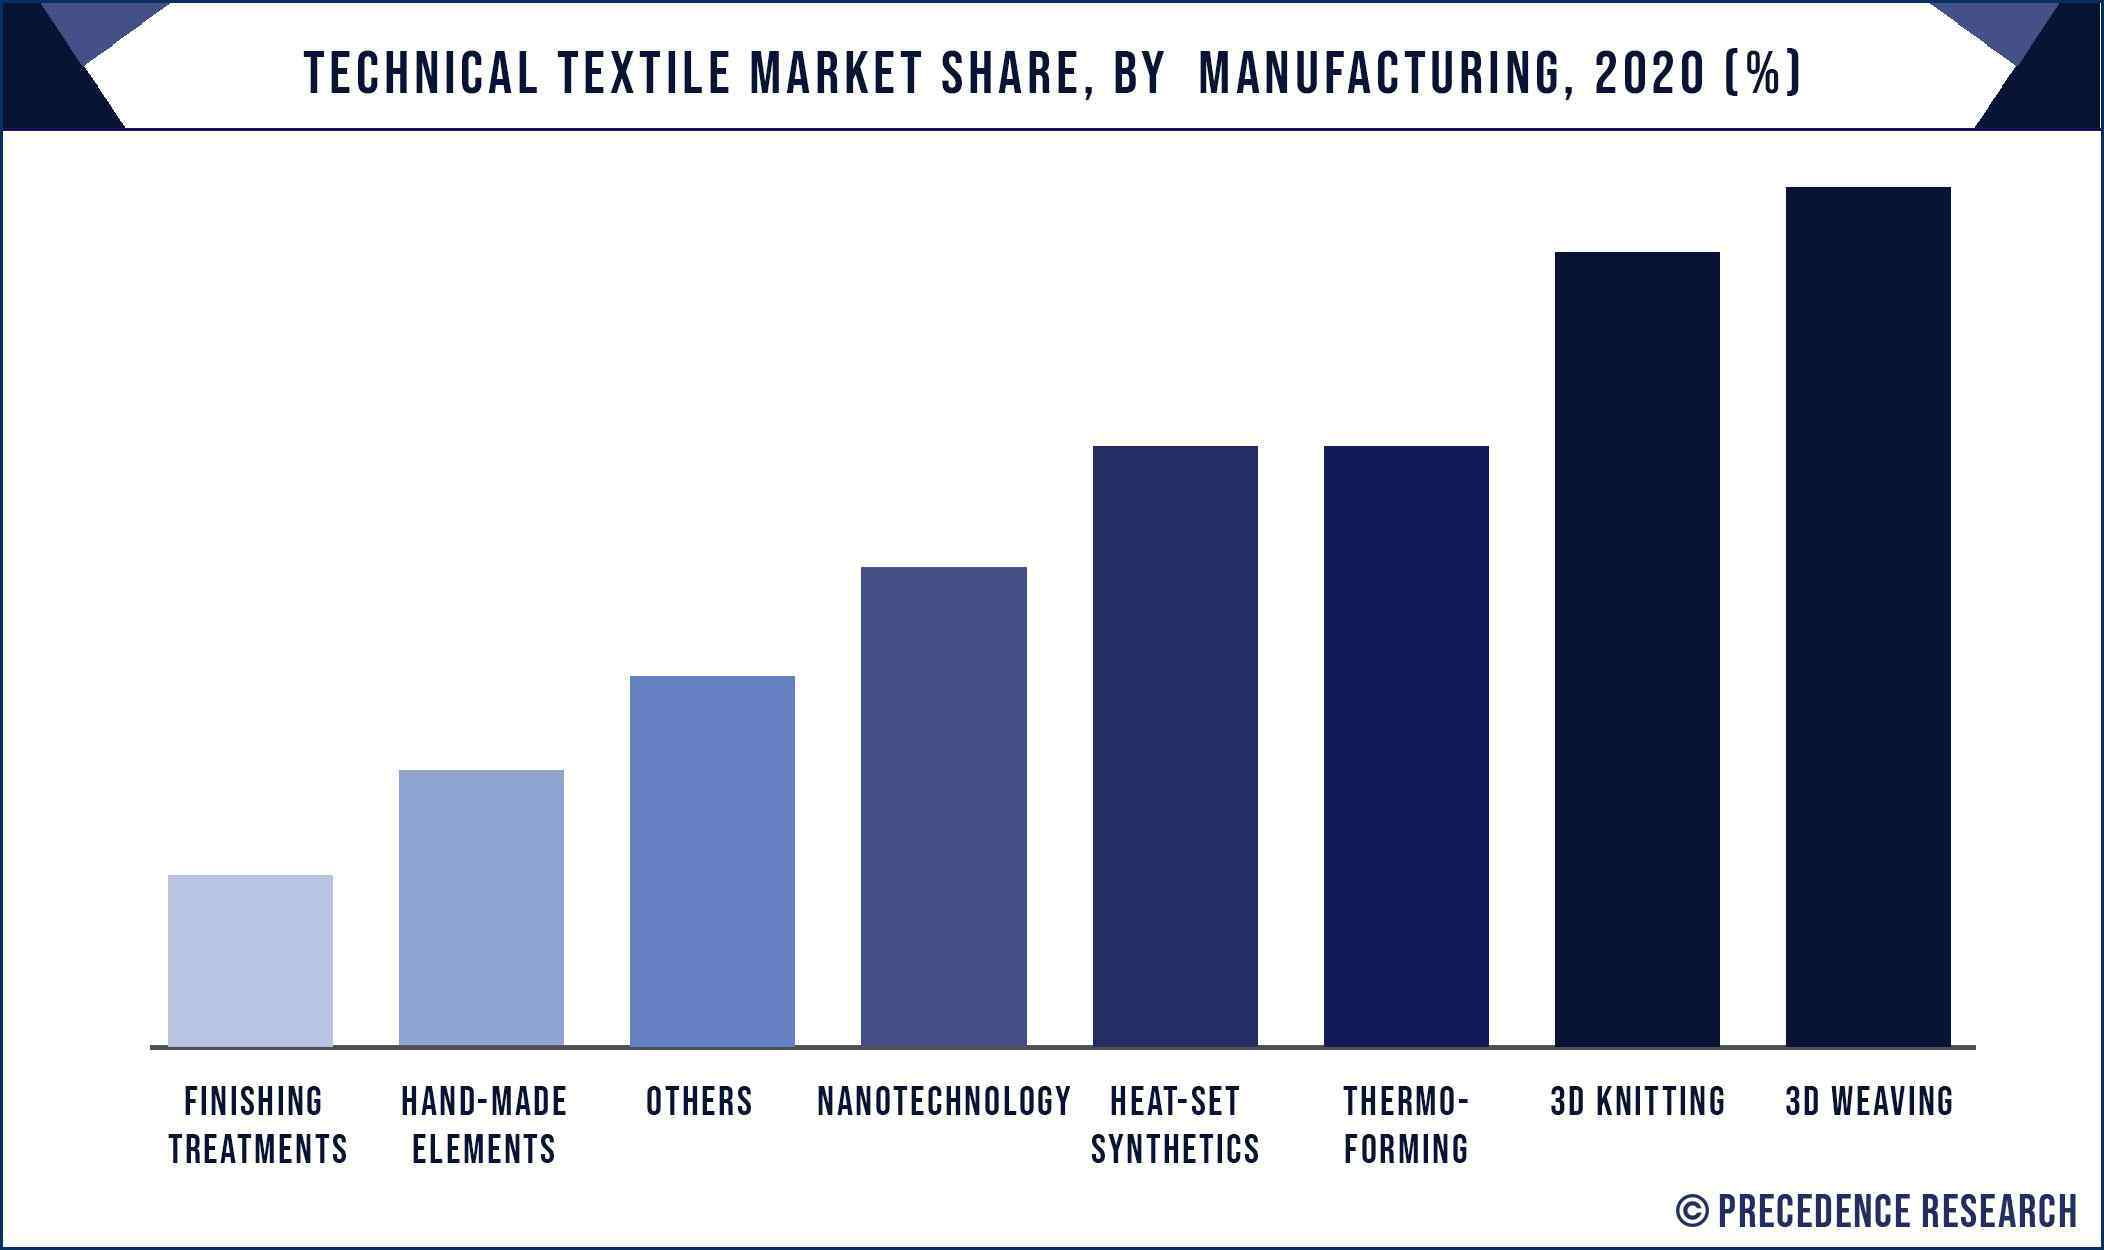 Technical Textile Market Share, By Manufacturing, 2020 (%)